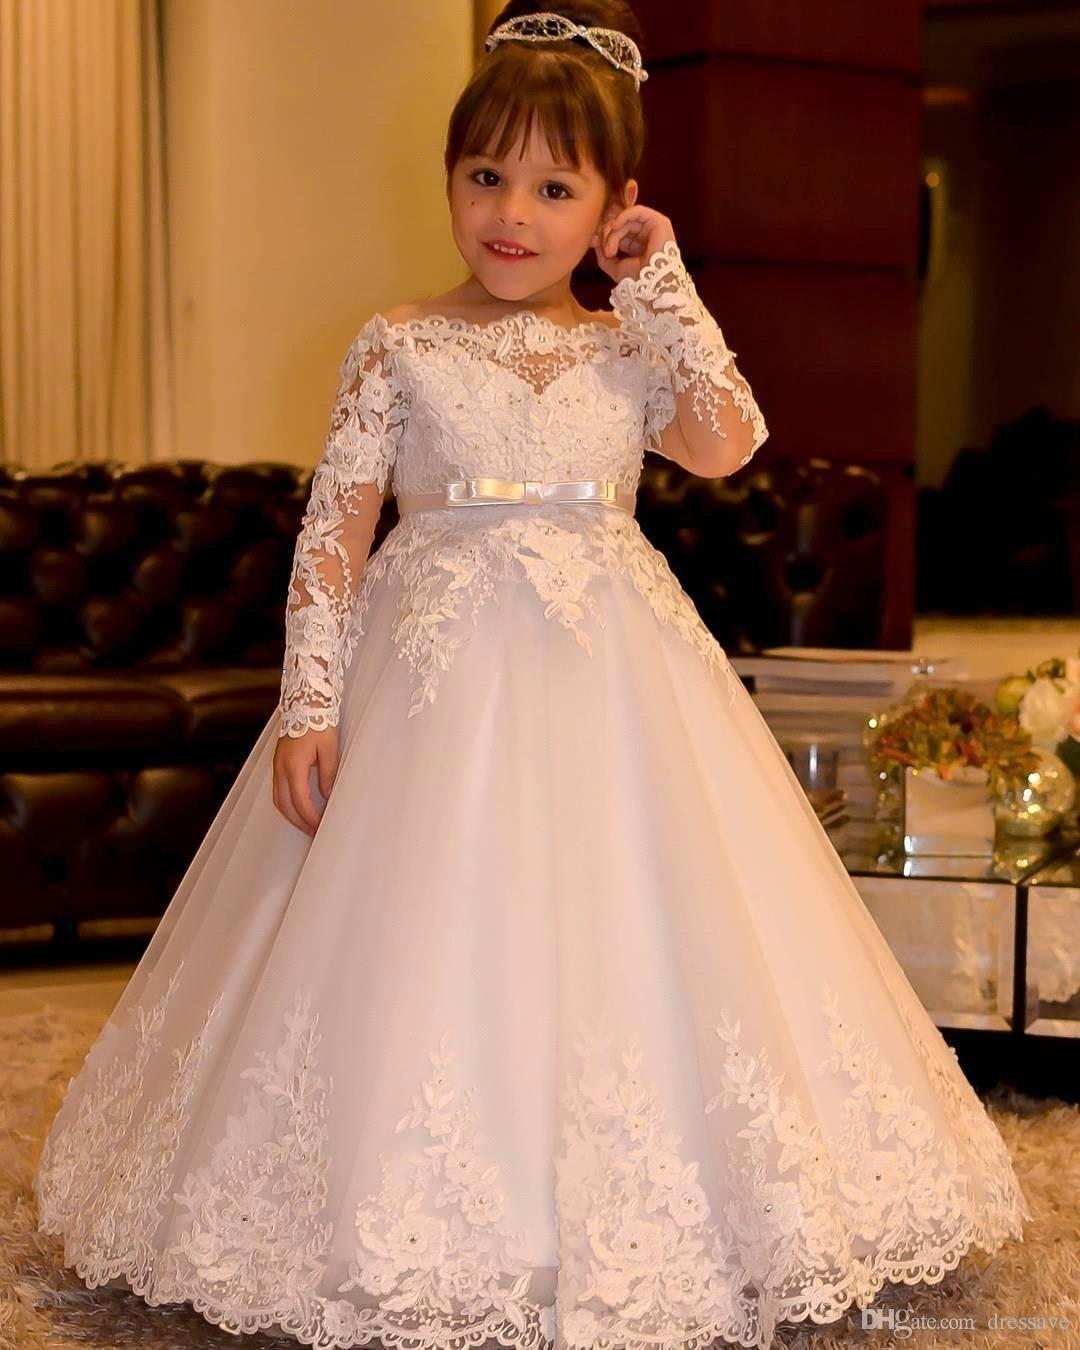 Cupcake Little Kids Pageant Gowns for Girls Long Sleeves Lace Appliques With Bow Sashes Wedding Birthday Toddler Flower Girl Dresses